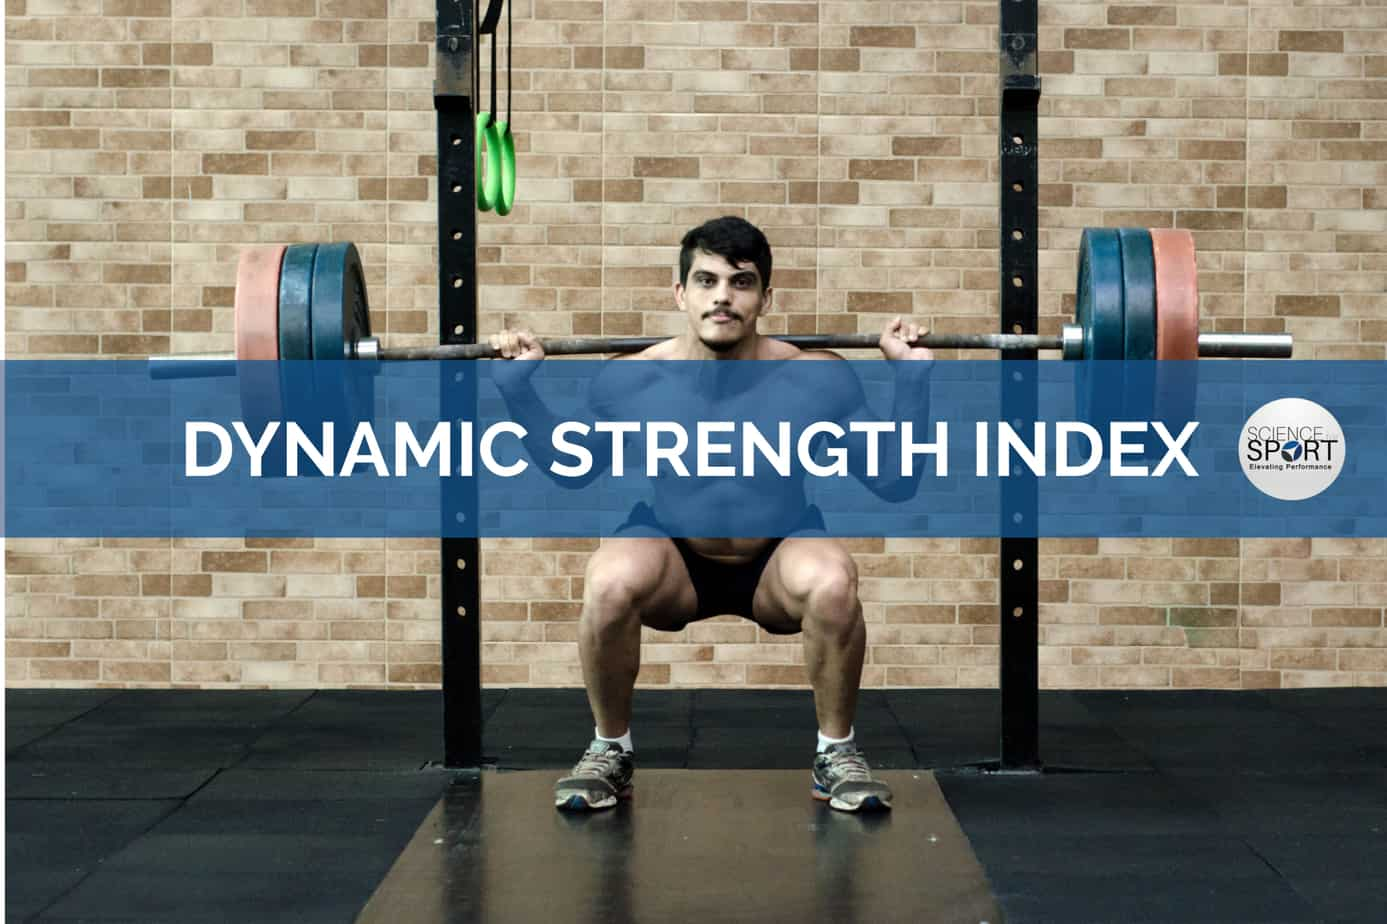 Dynamic strength index